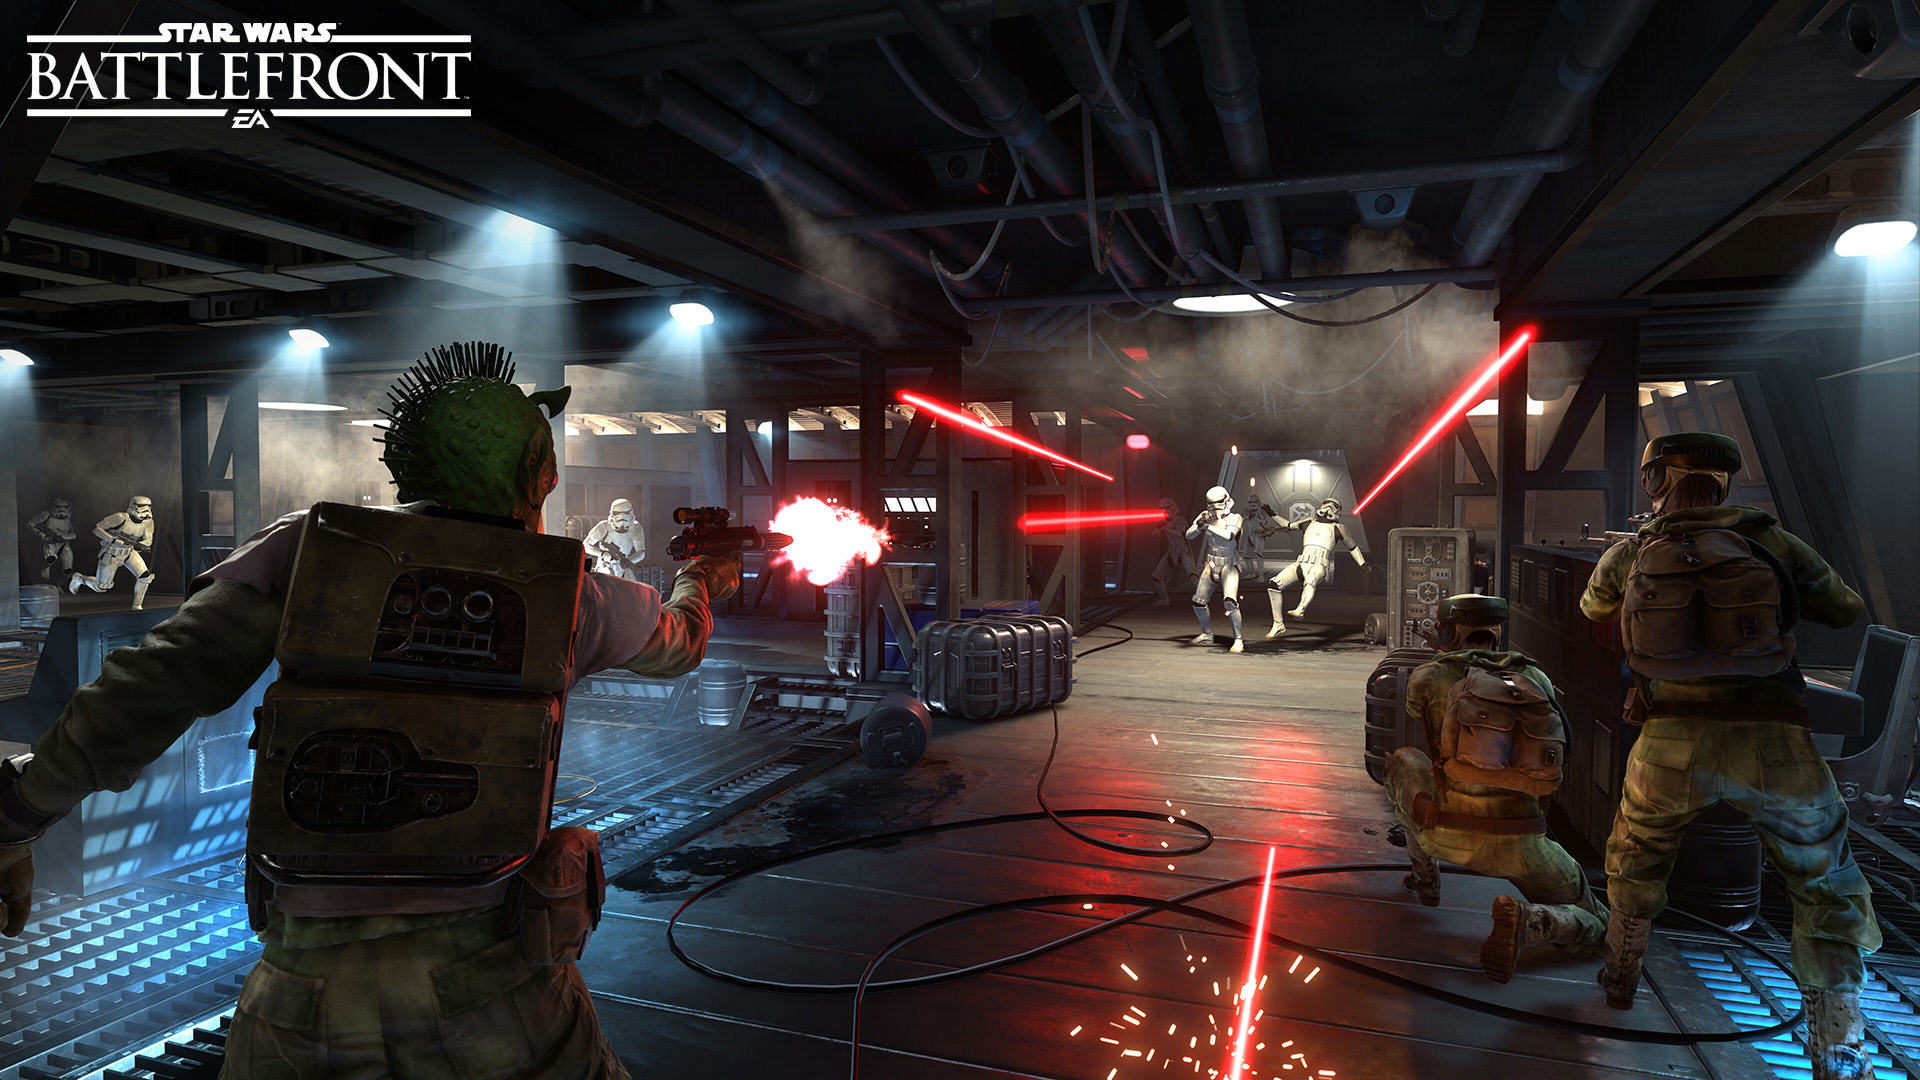 Check Out All Star Wars Battlefront Star Cards Ahead Of Launch UNILAD featuredImage.img 42659